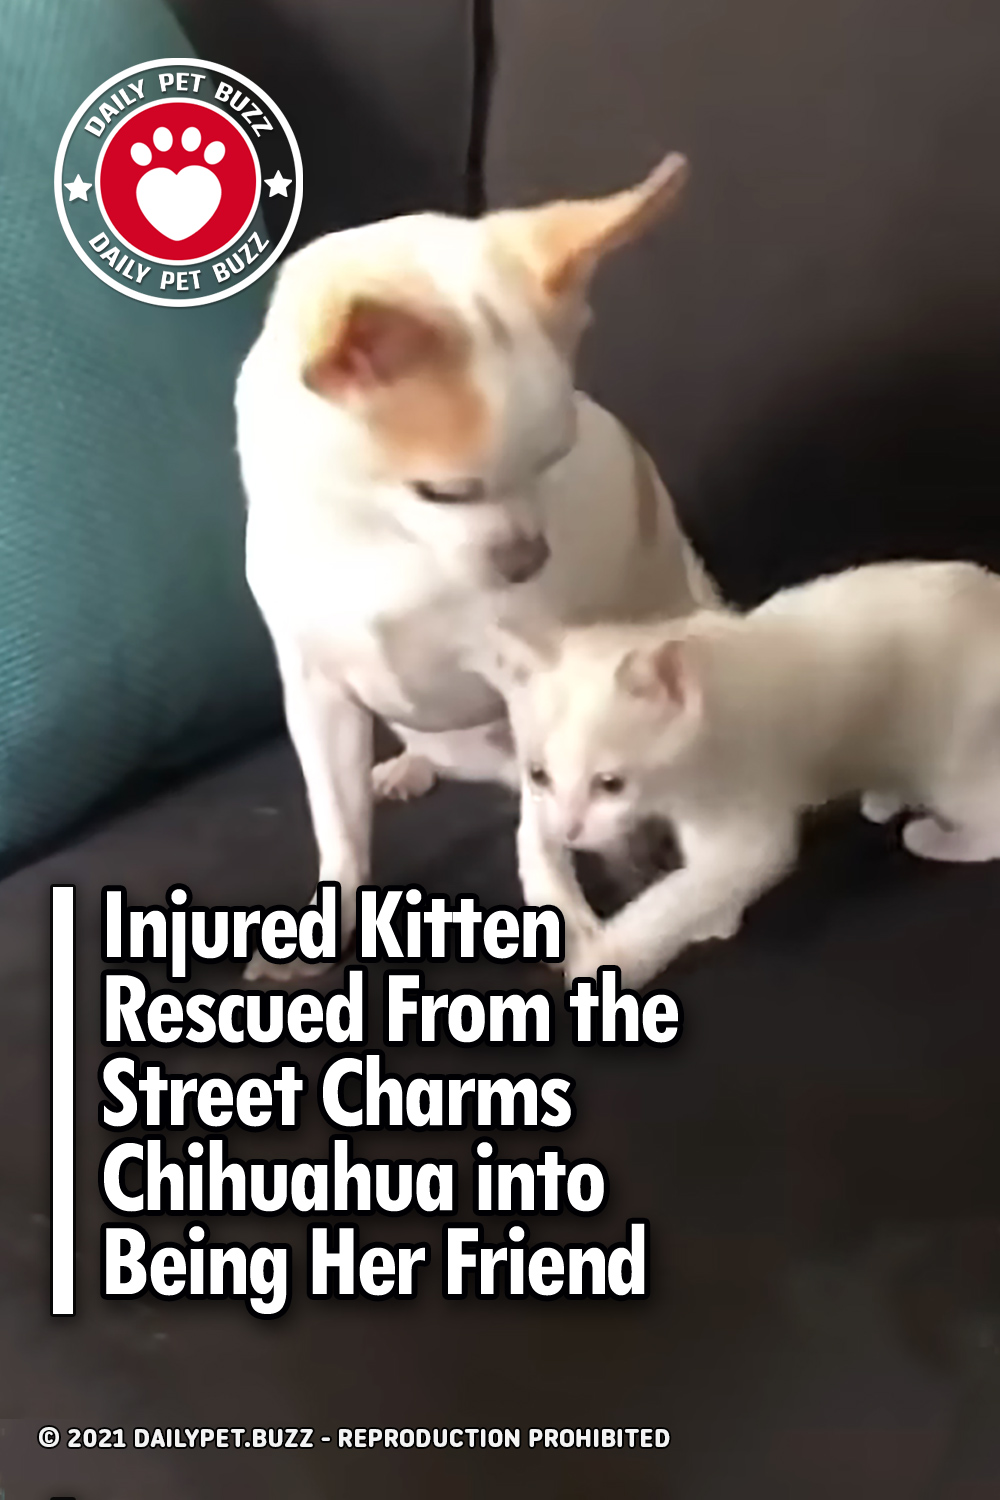 Injured Kitten Rescued From the Street Charms Chihuahua into Being Her Friend